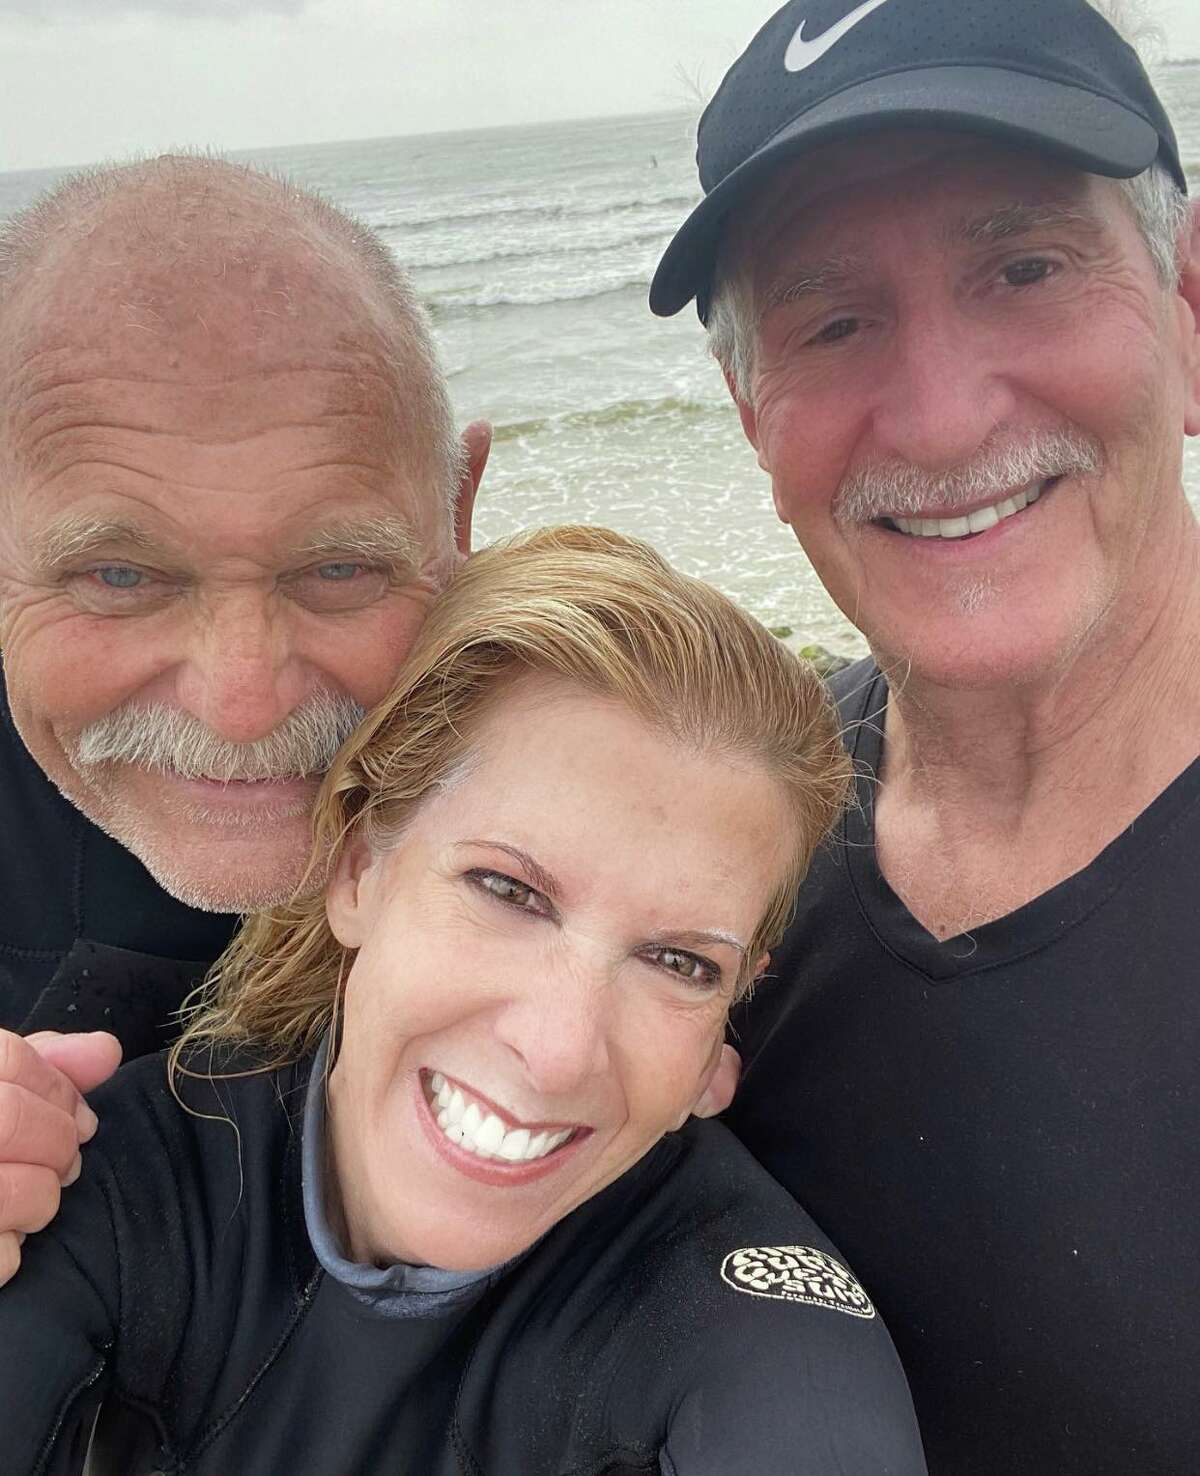 These are some of Marisa's trusted Texas surf buddies. She surfed with them for the last time at Surfside right before she went into quarantine.